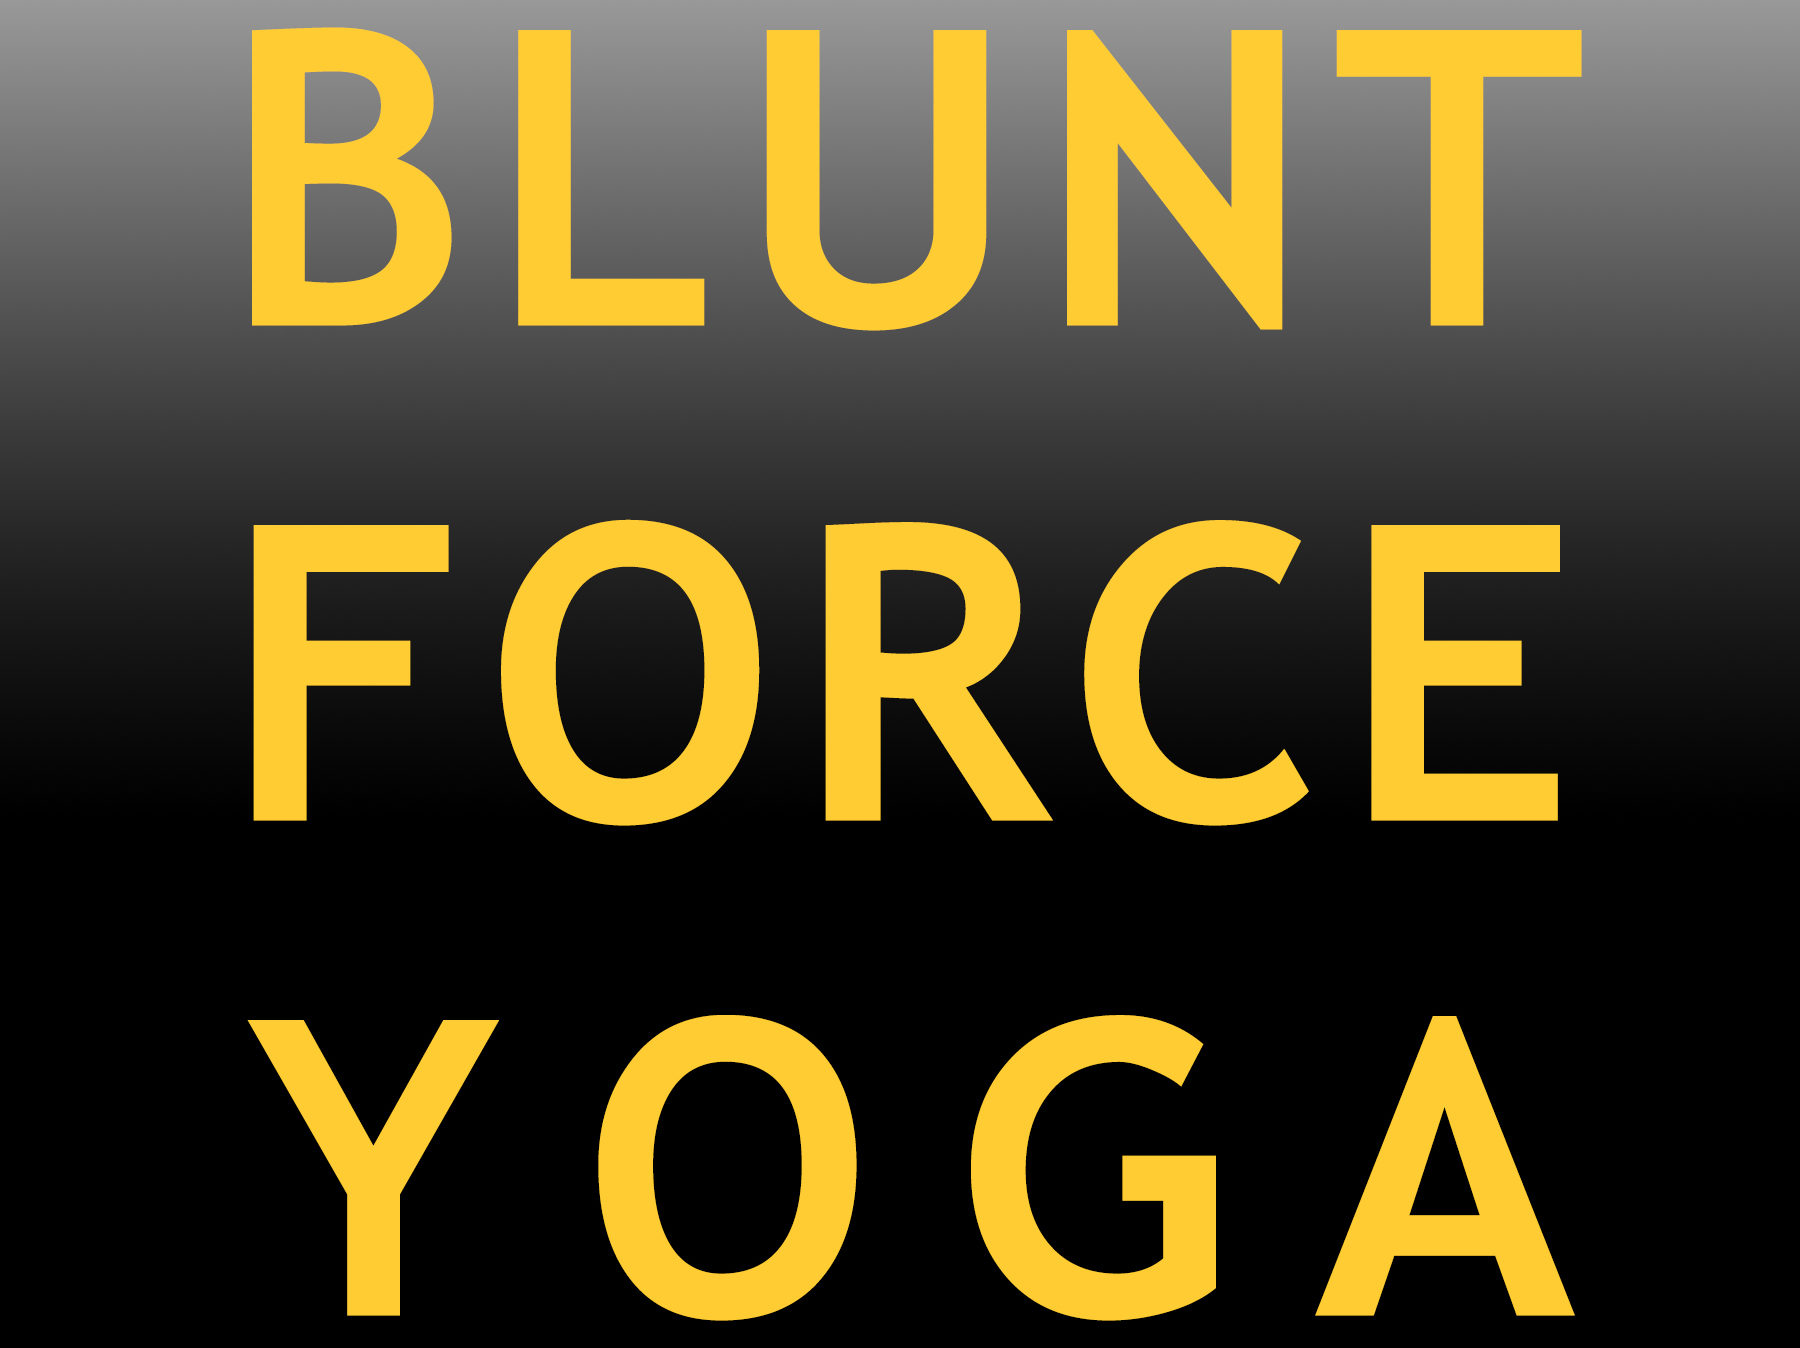 Blunt Force Yoga